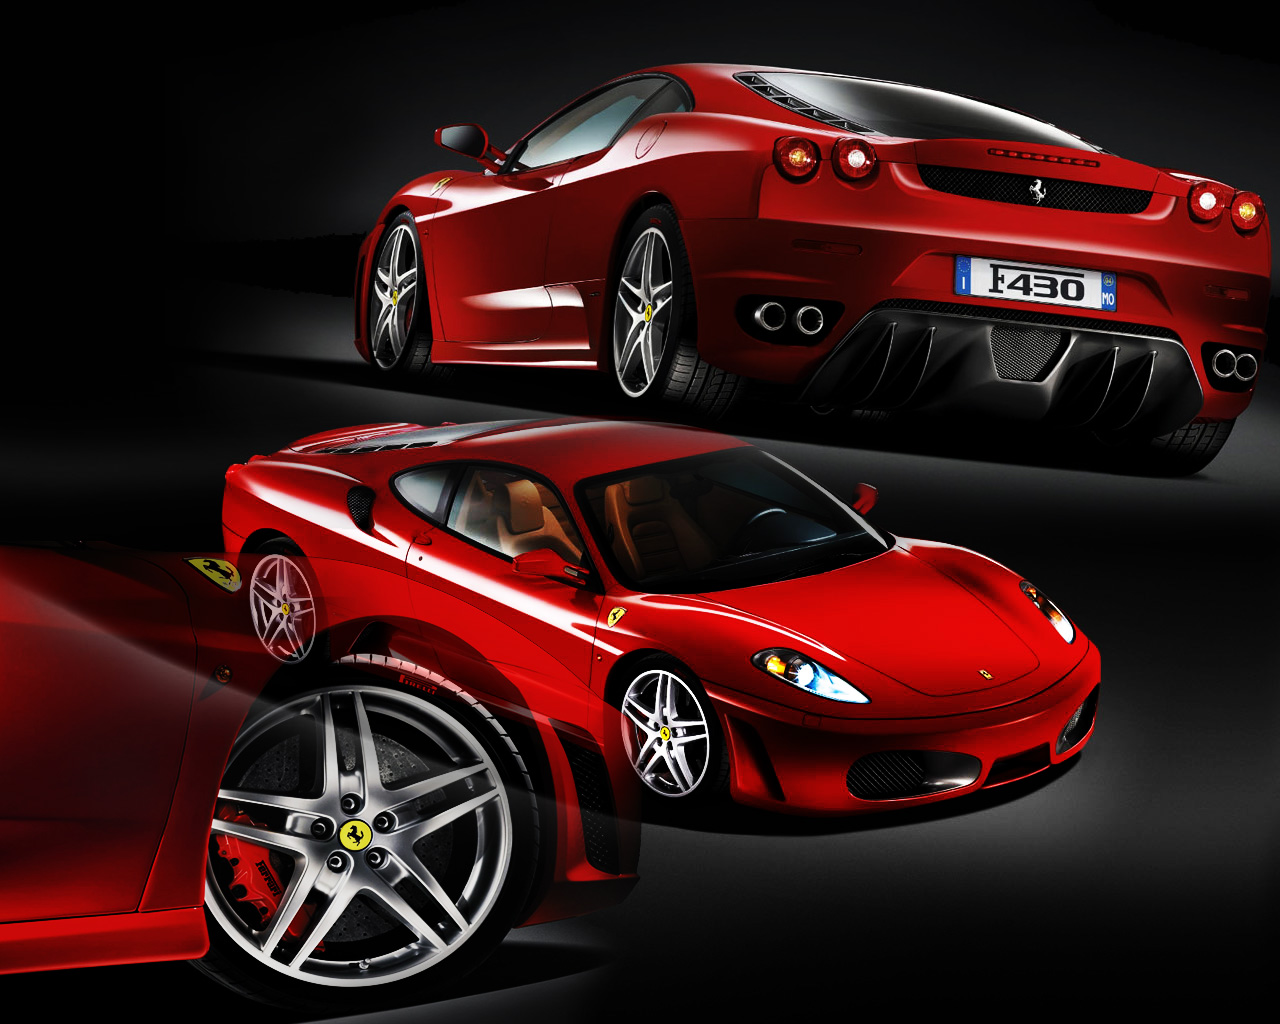 Collection Of Ferrari Enzo Wallpapers On Hdwallpapers 1280x1024